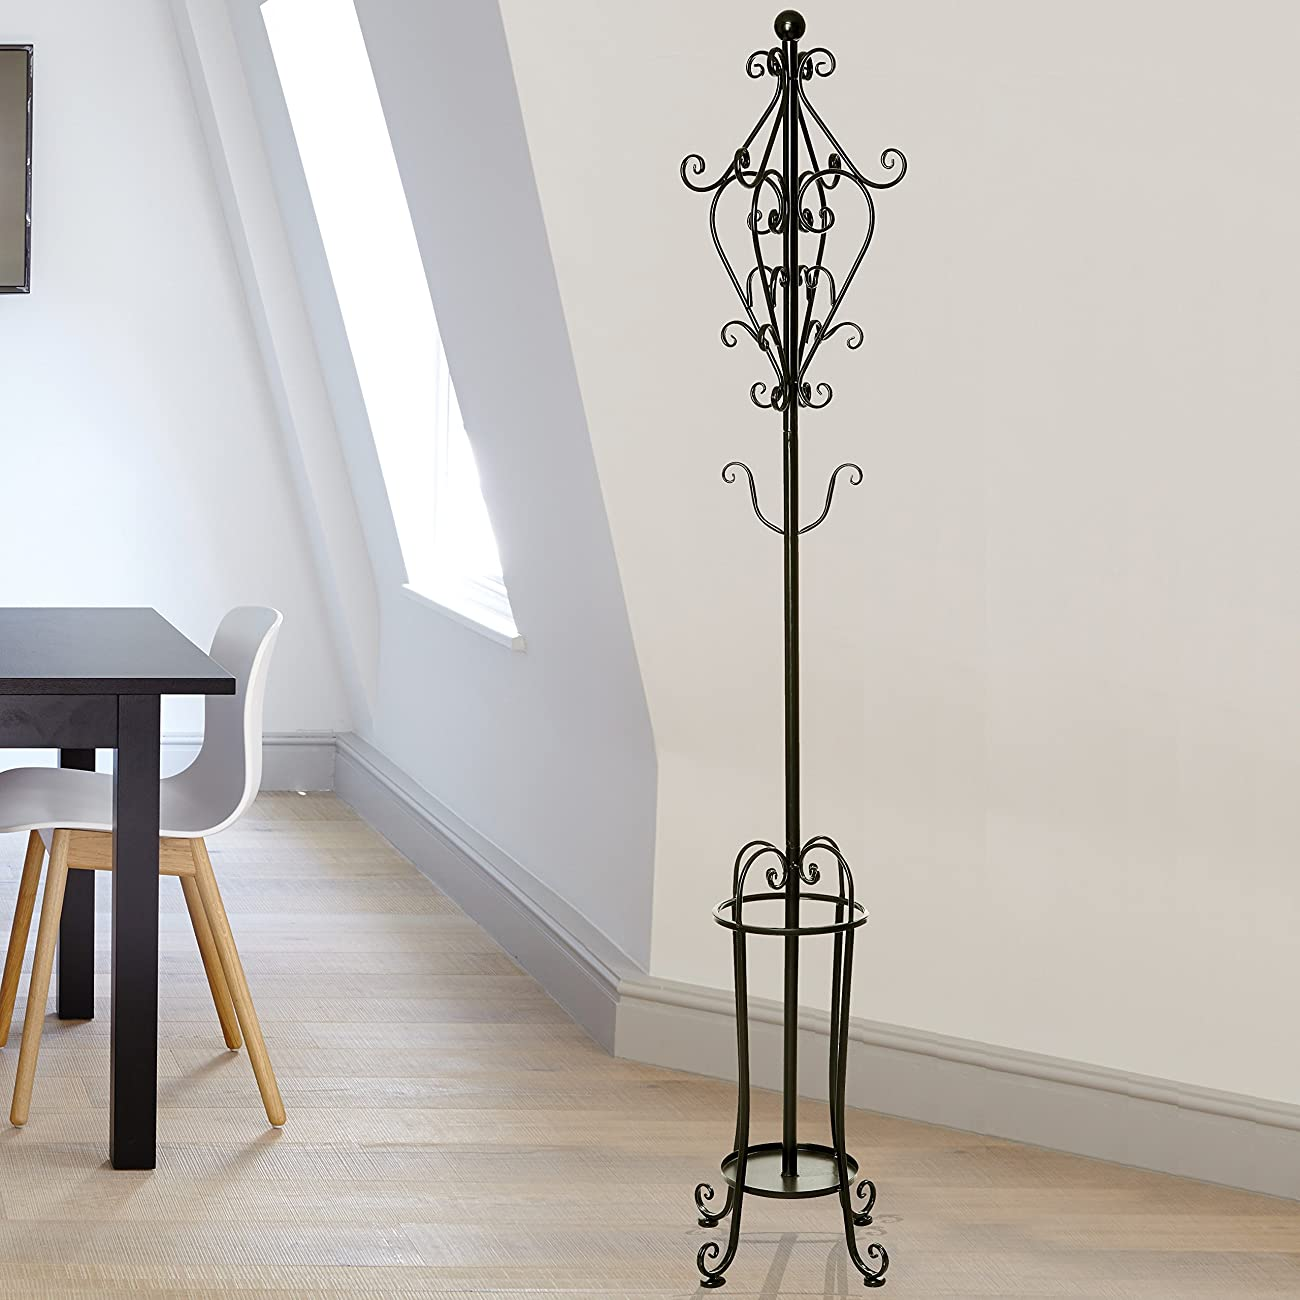 6' Freestanding Vintage Victorian Black Metal Scrollwork Coat Rack / Hat Hook Stand with Umbrella Holder 1